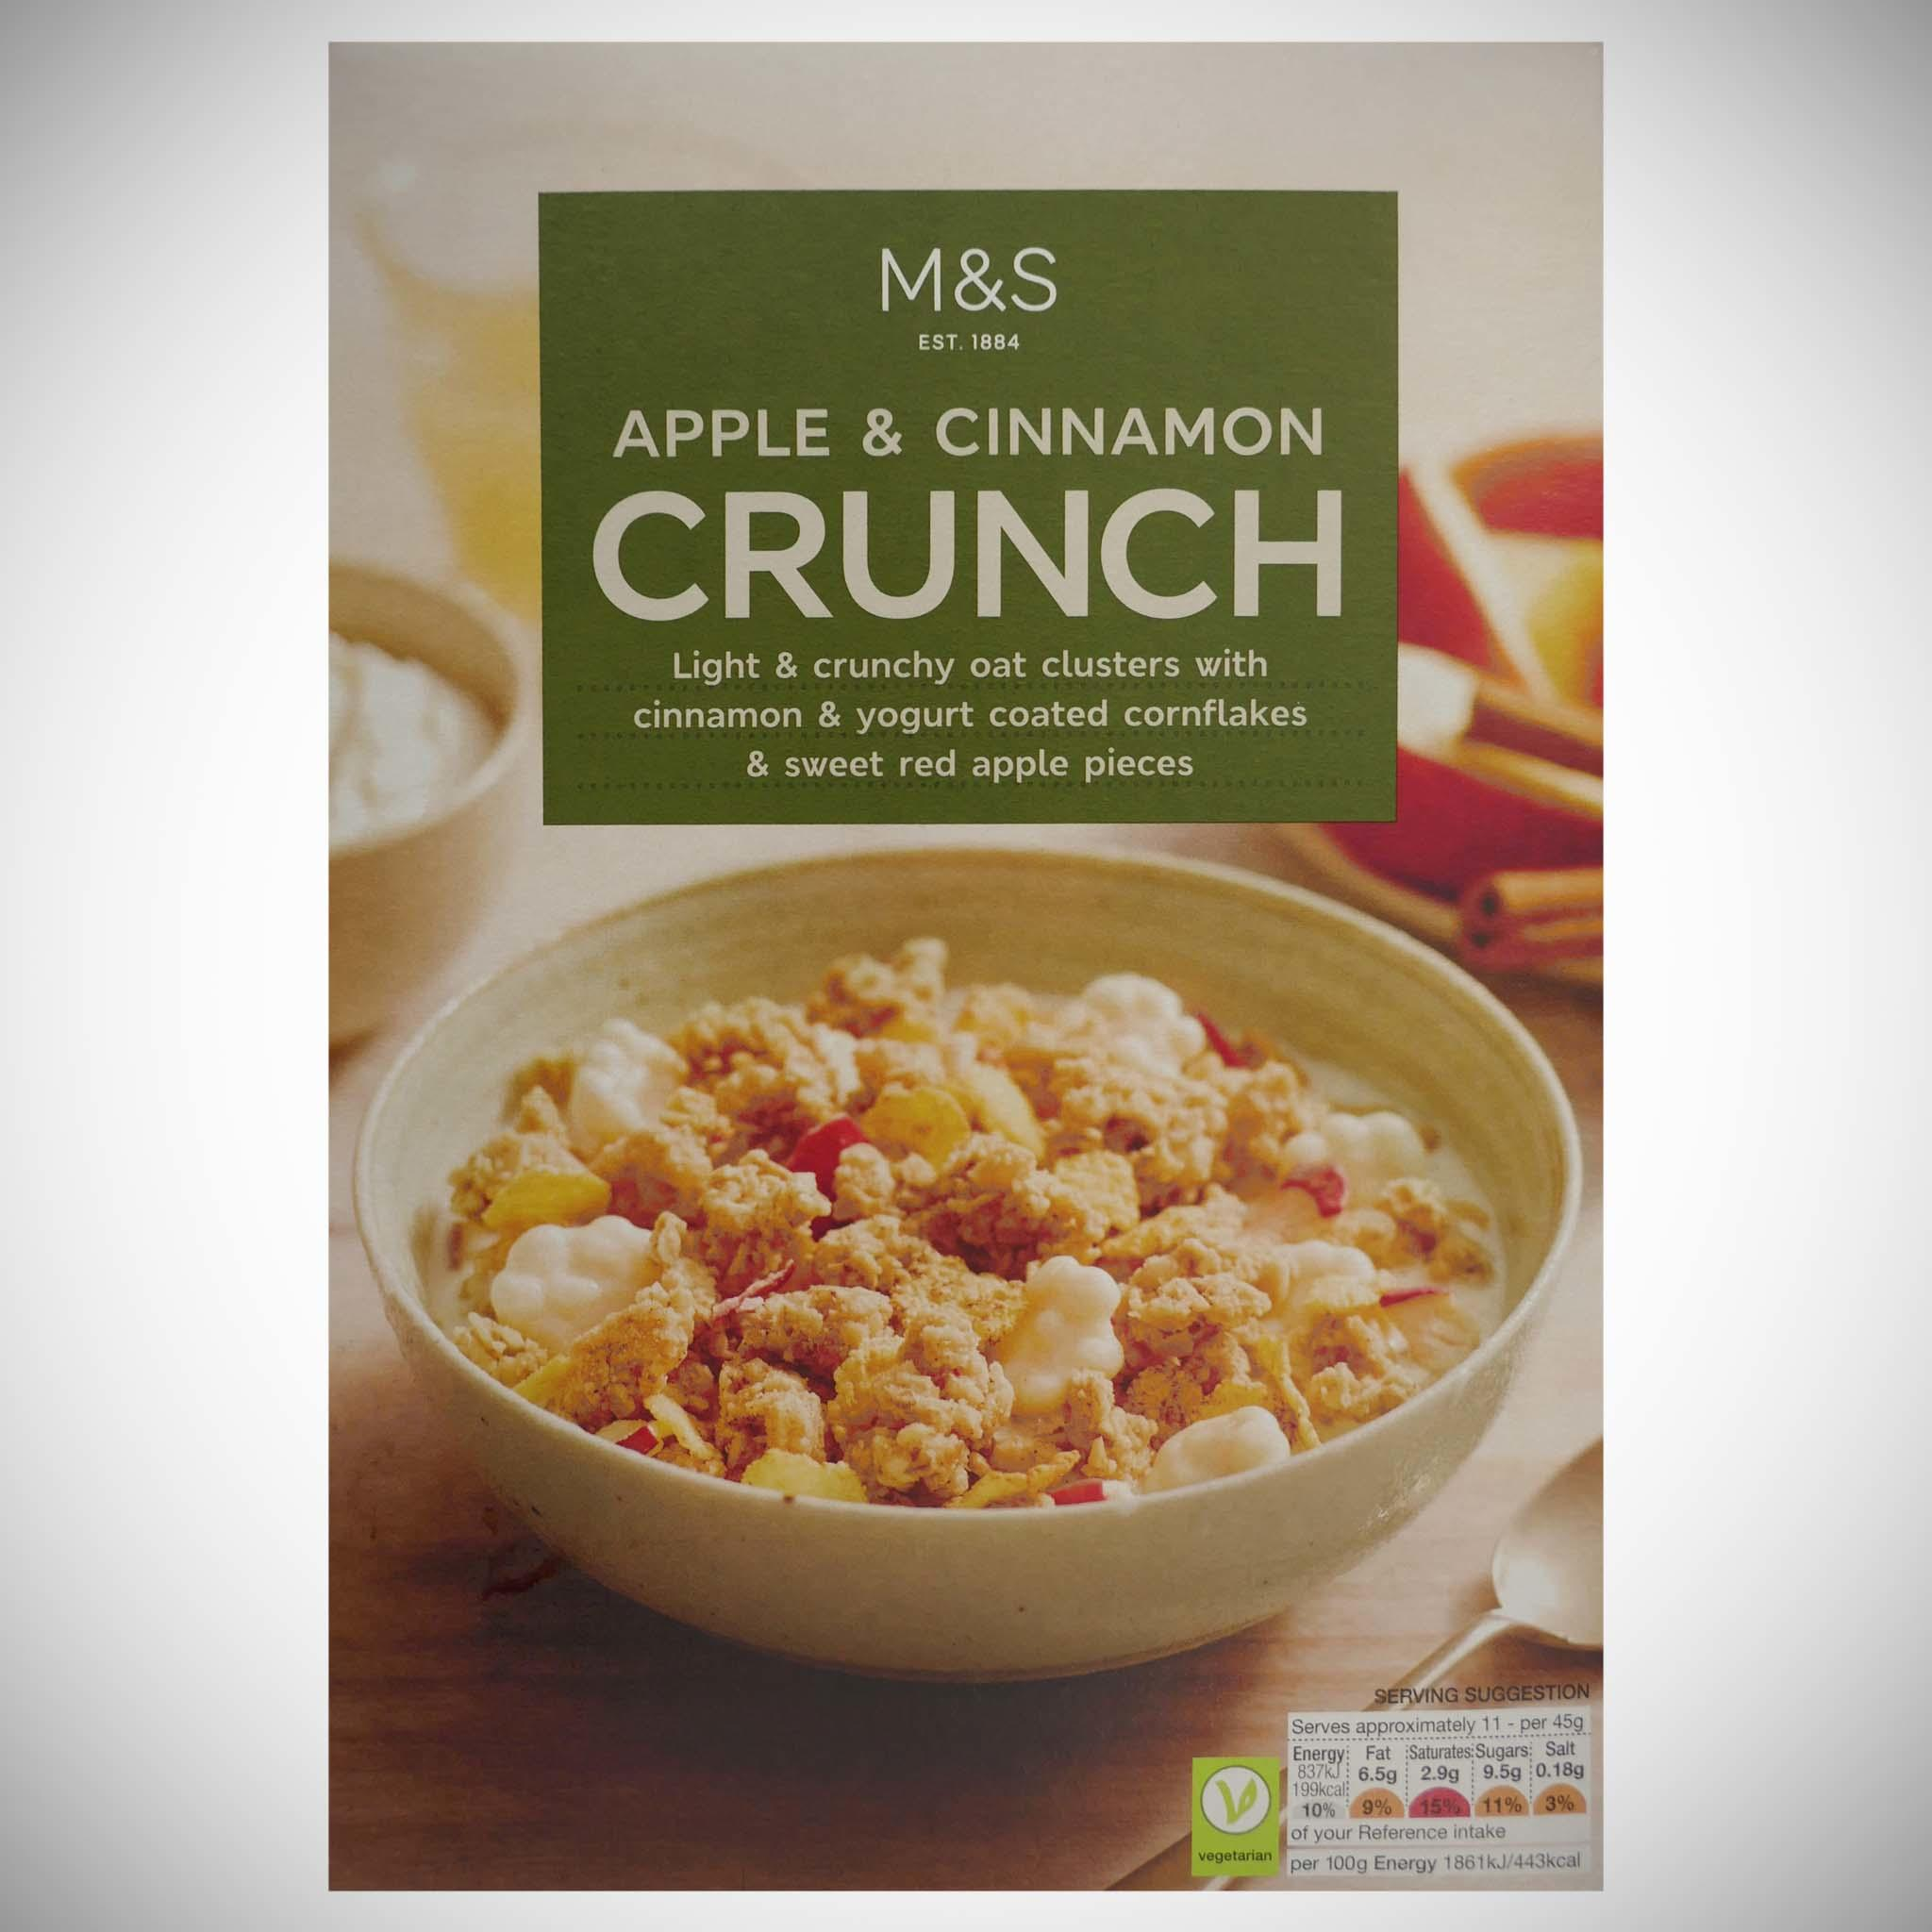 Apple & Cinnamon Crunch